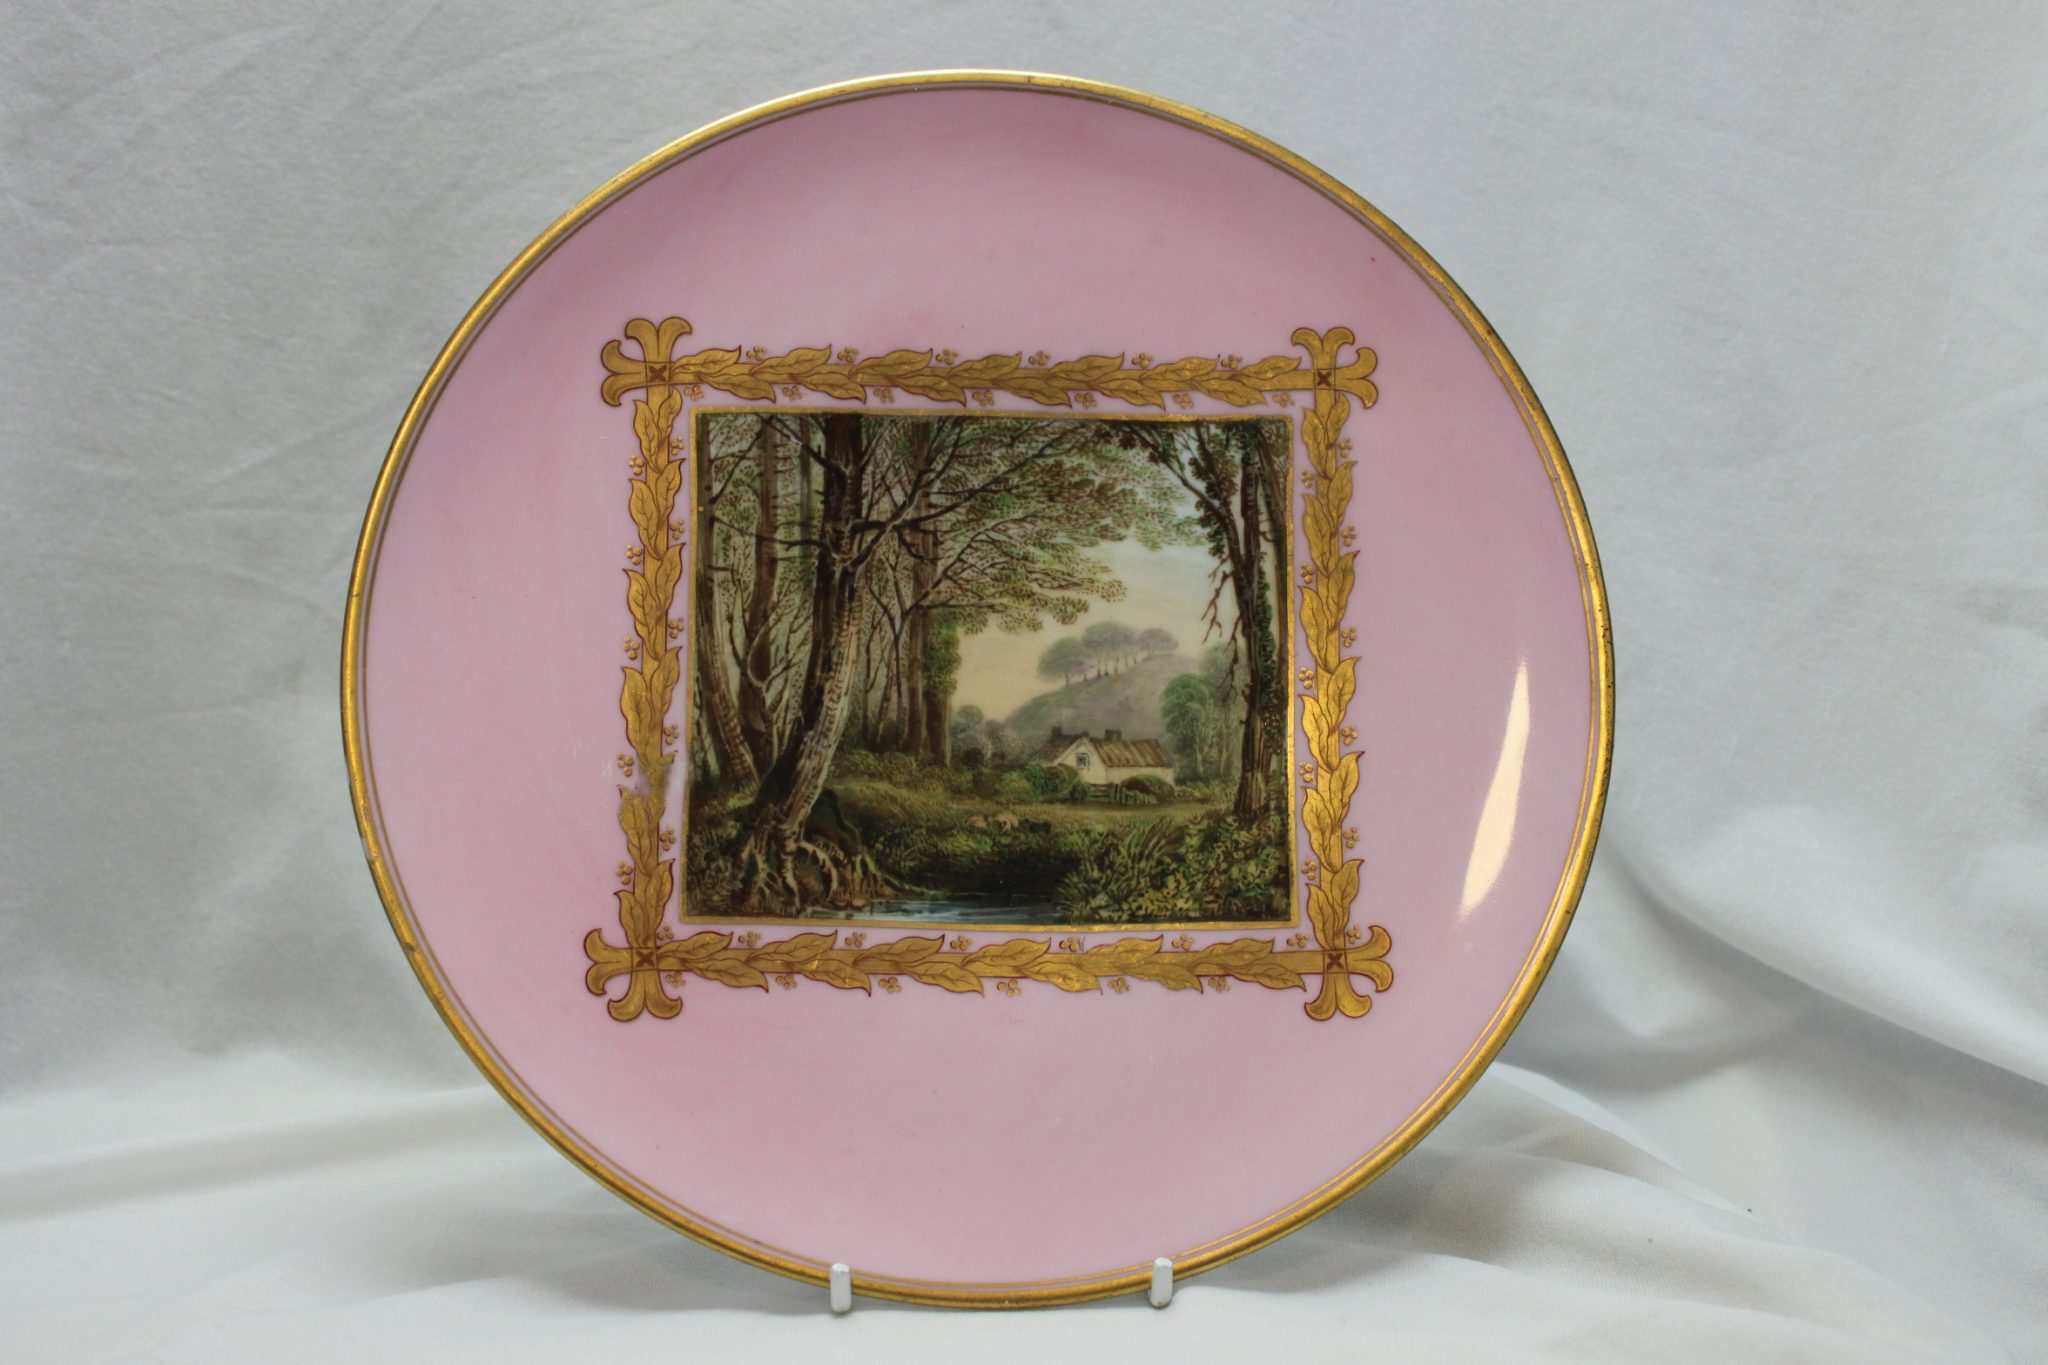 Davenport hand painted plate